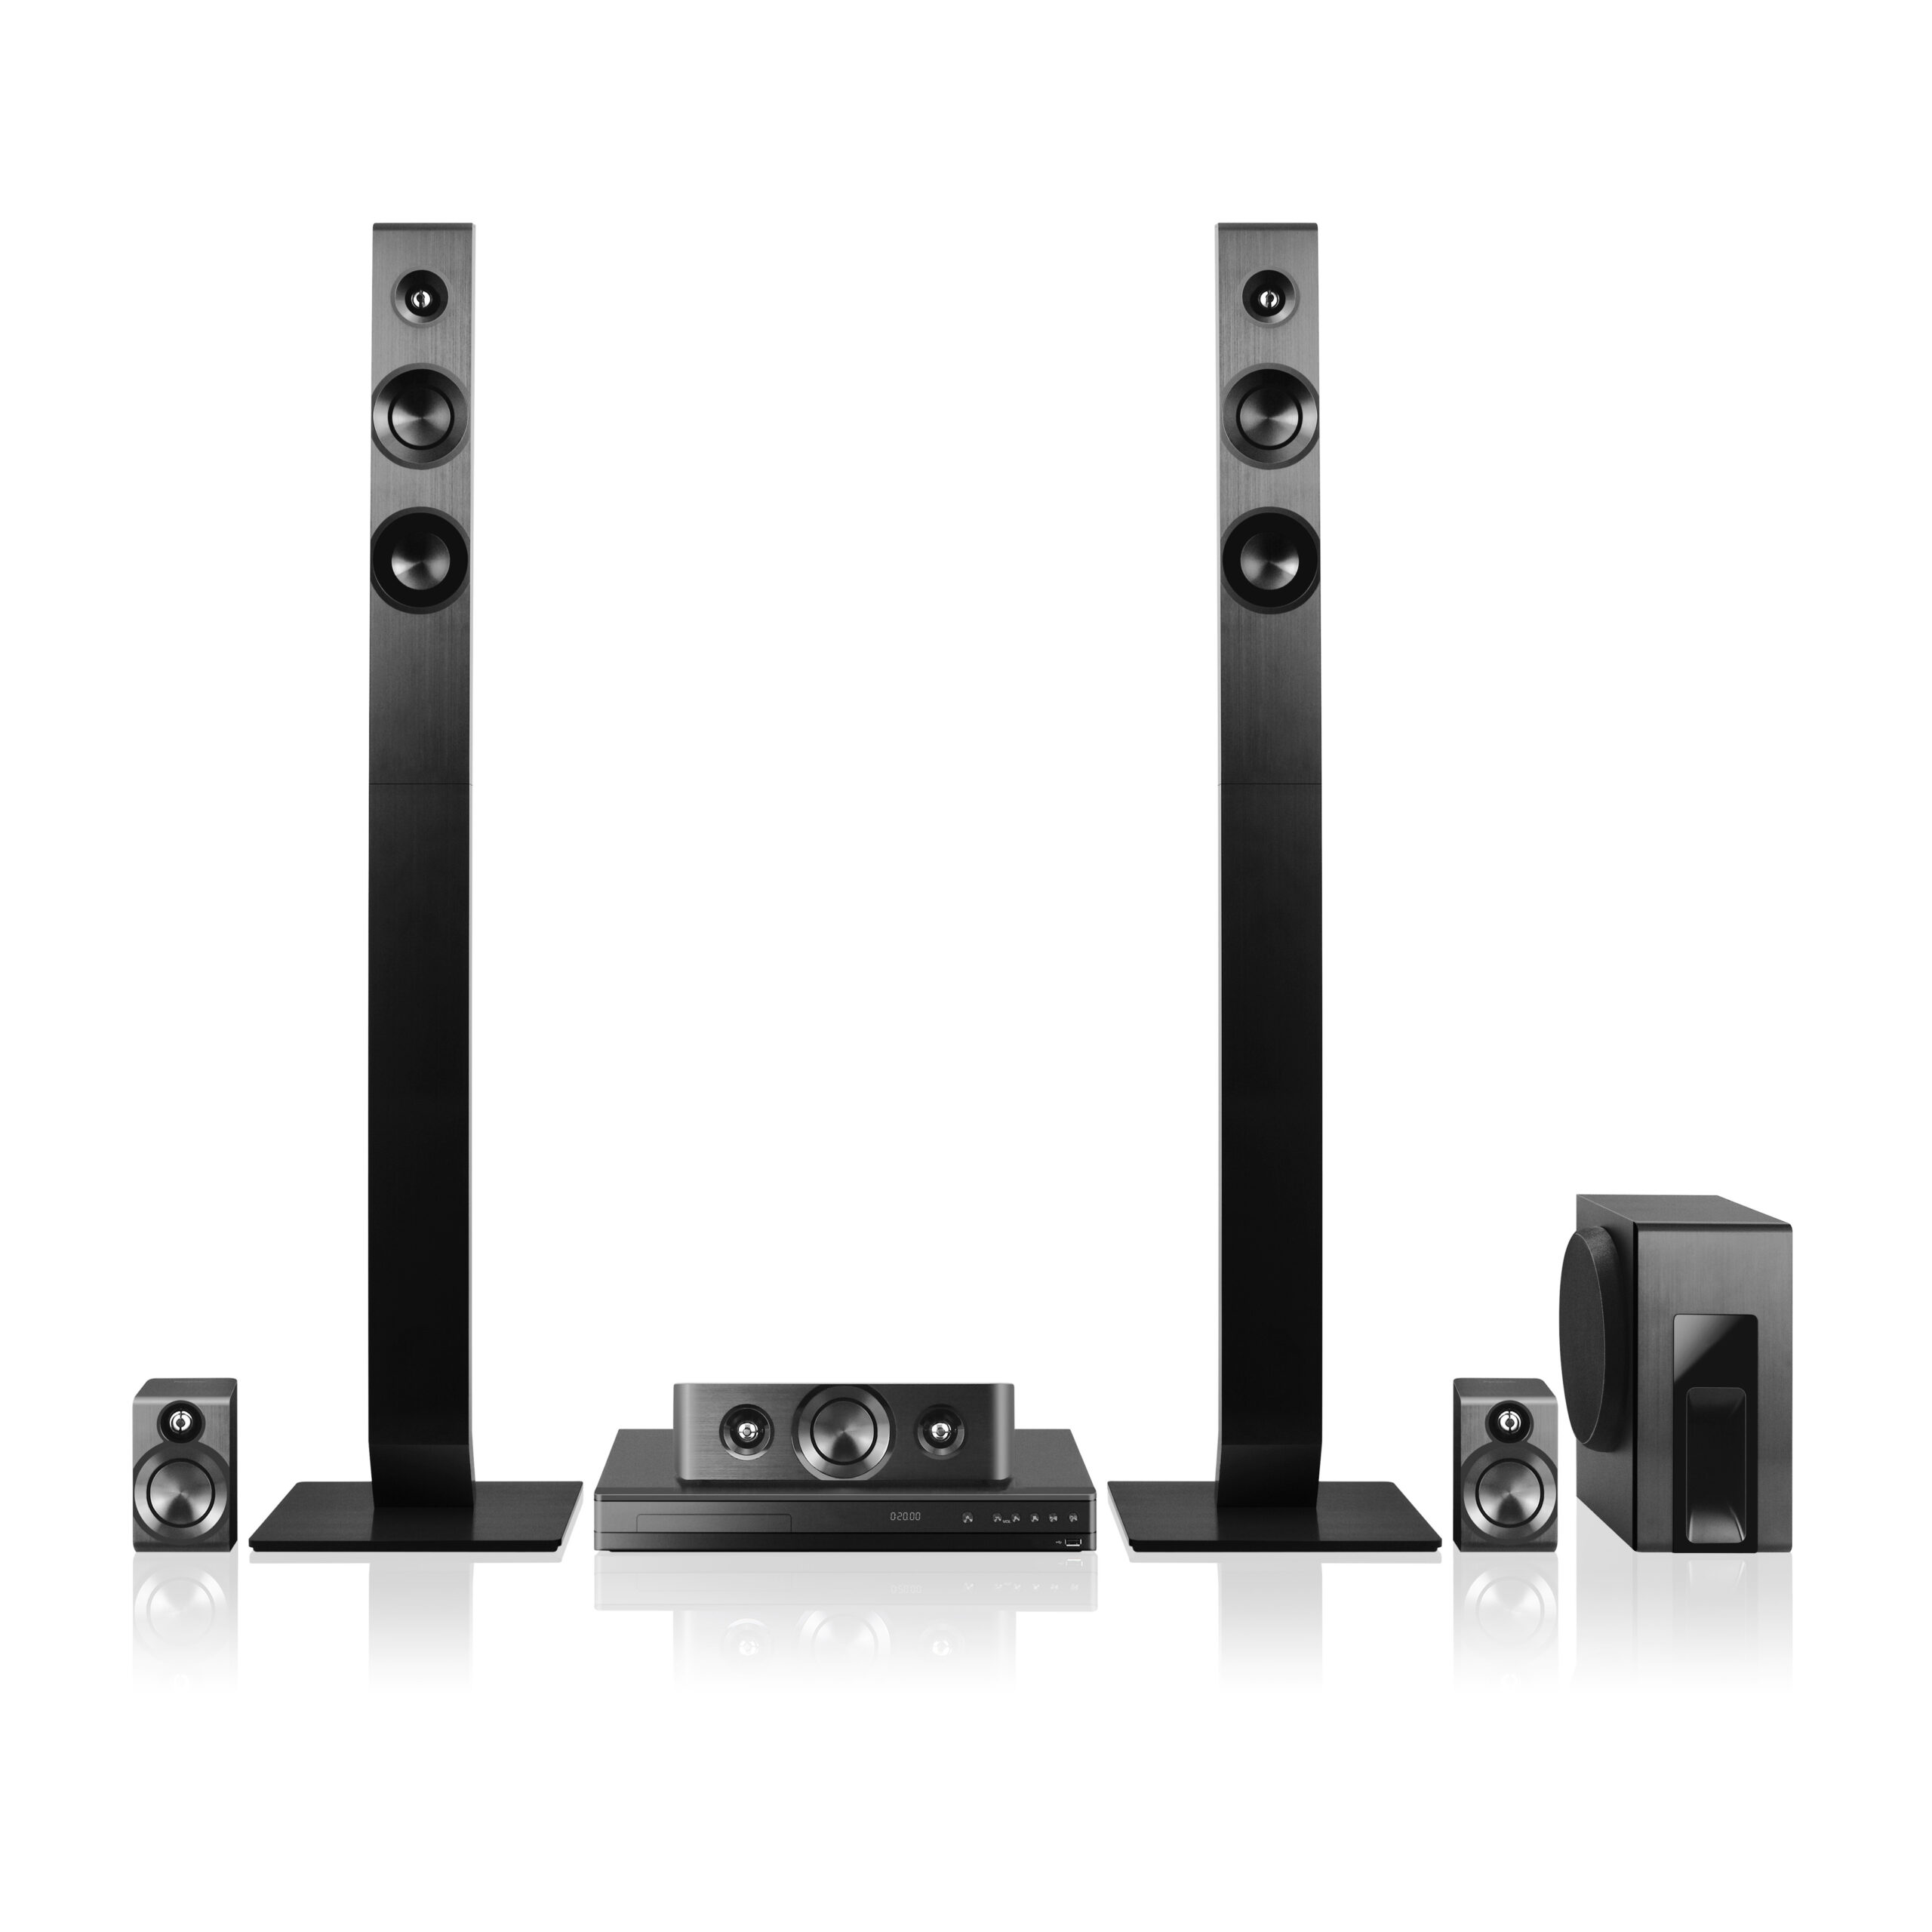 Home Theater Receiver and Speaker System Isolated. Side View 3D Home Cinema Entertainment System. Data Surround Speakers. Acoustic Audio Stereo Sound 5.1 Channel Output. Household Electrical Equipment